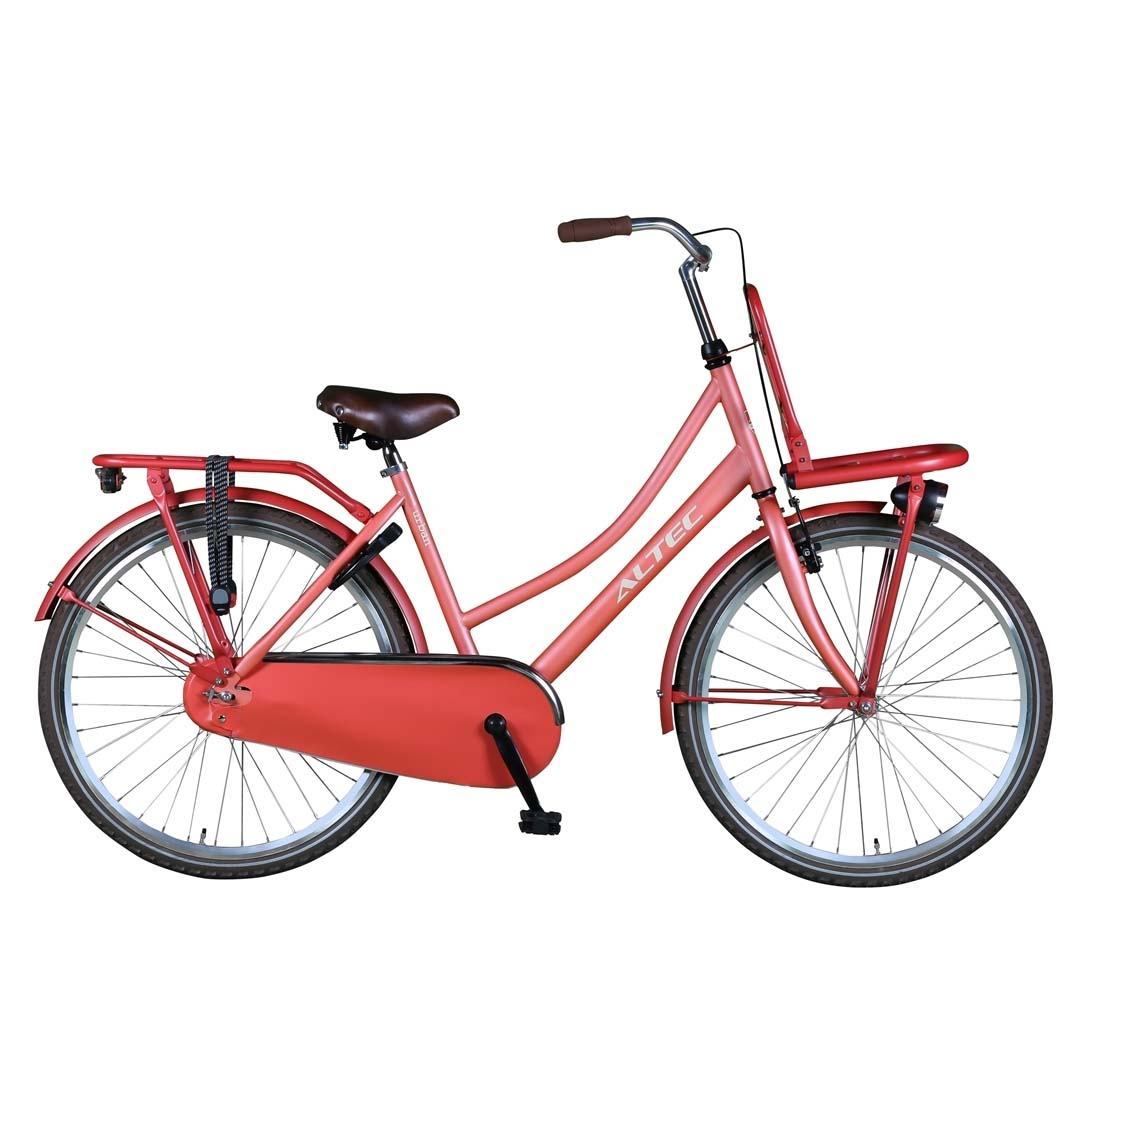 Altec-Urban-26-inch-Transportfiets-Stain-Red copy